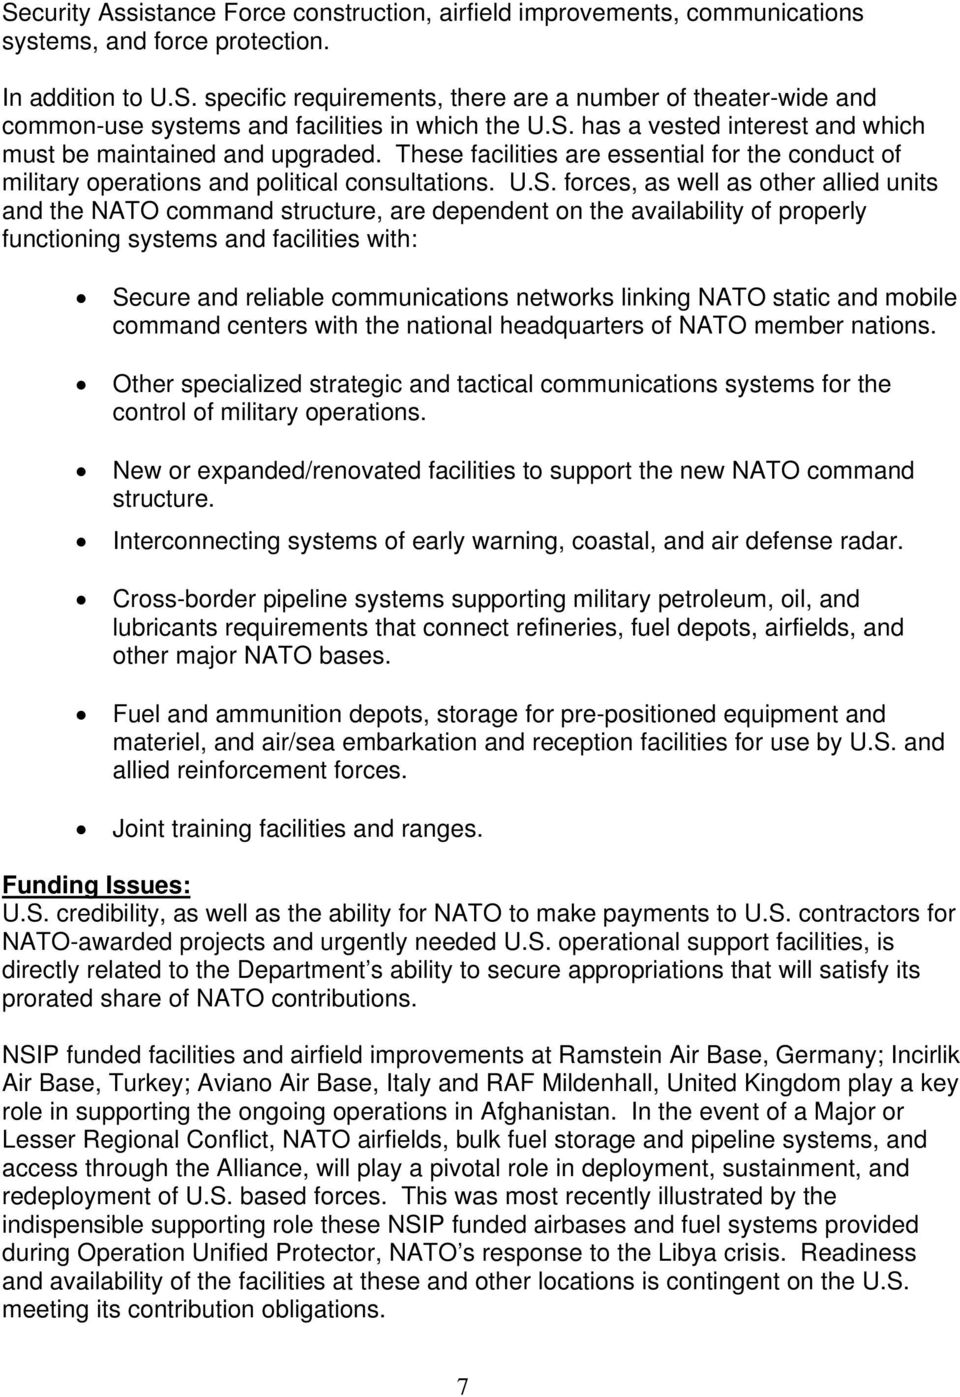 allied units and the NATO command structure, are dependent on the availability of properly functioning systems and facilities with: Secure and reliable communications networks linking NATO static and